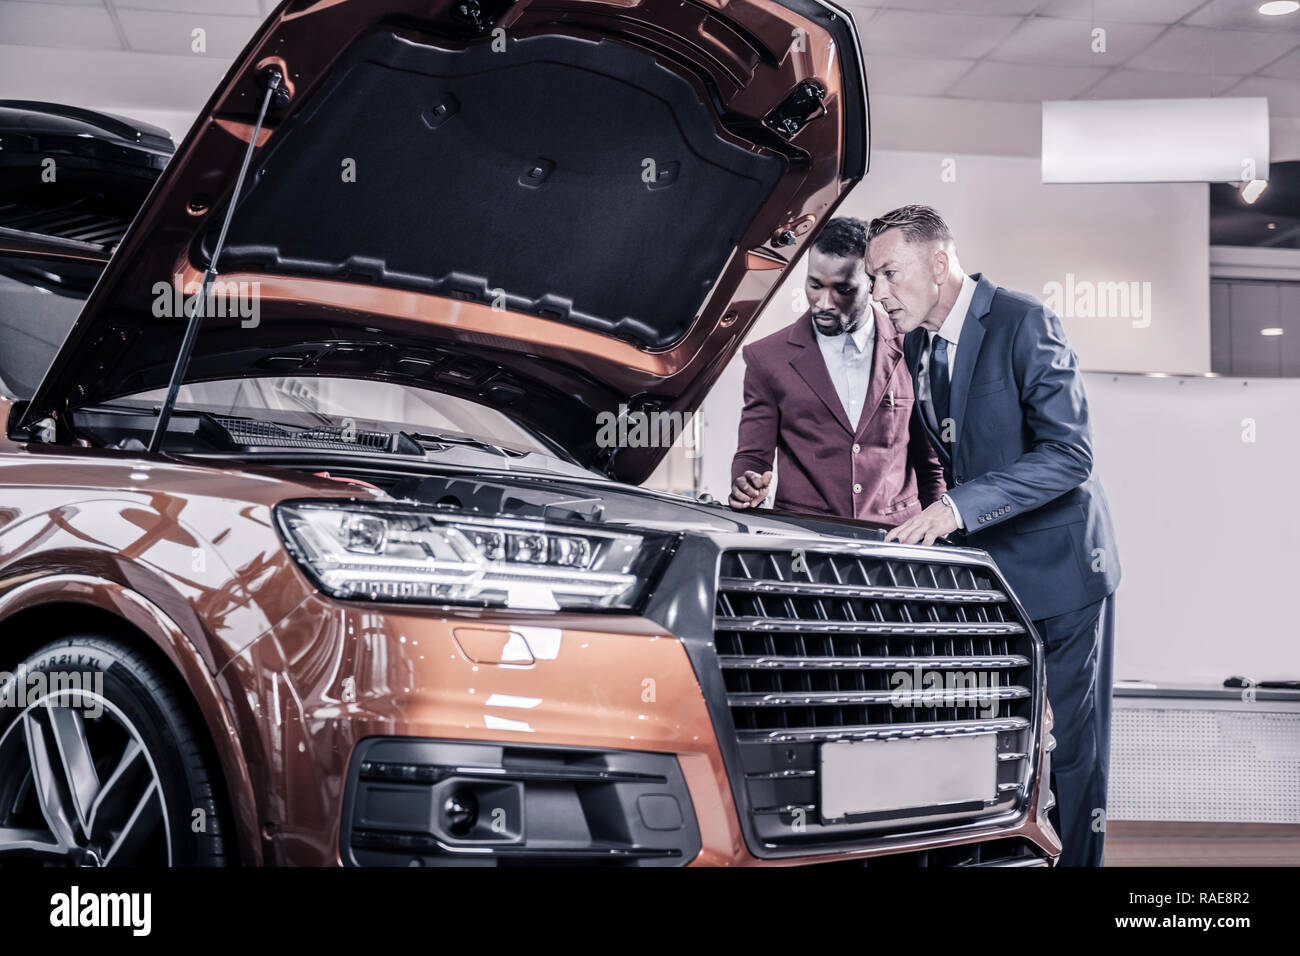 Businessman wearing dark costume looking into opened front trunk - Stock Image